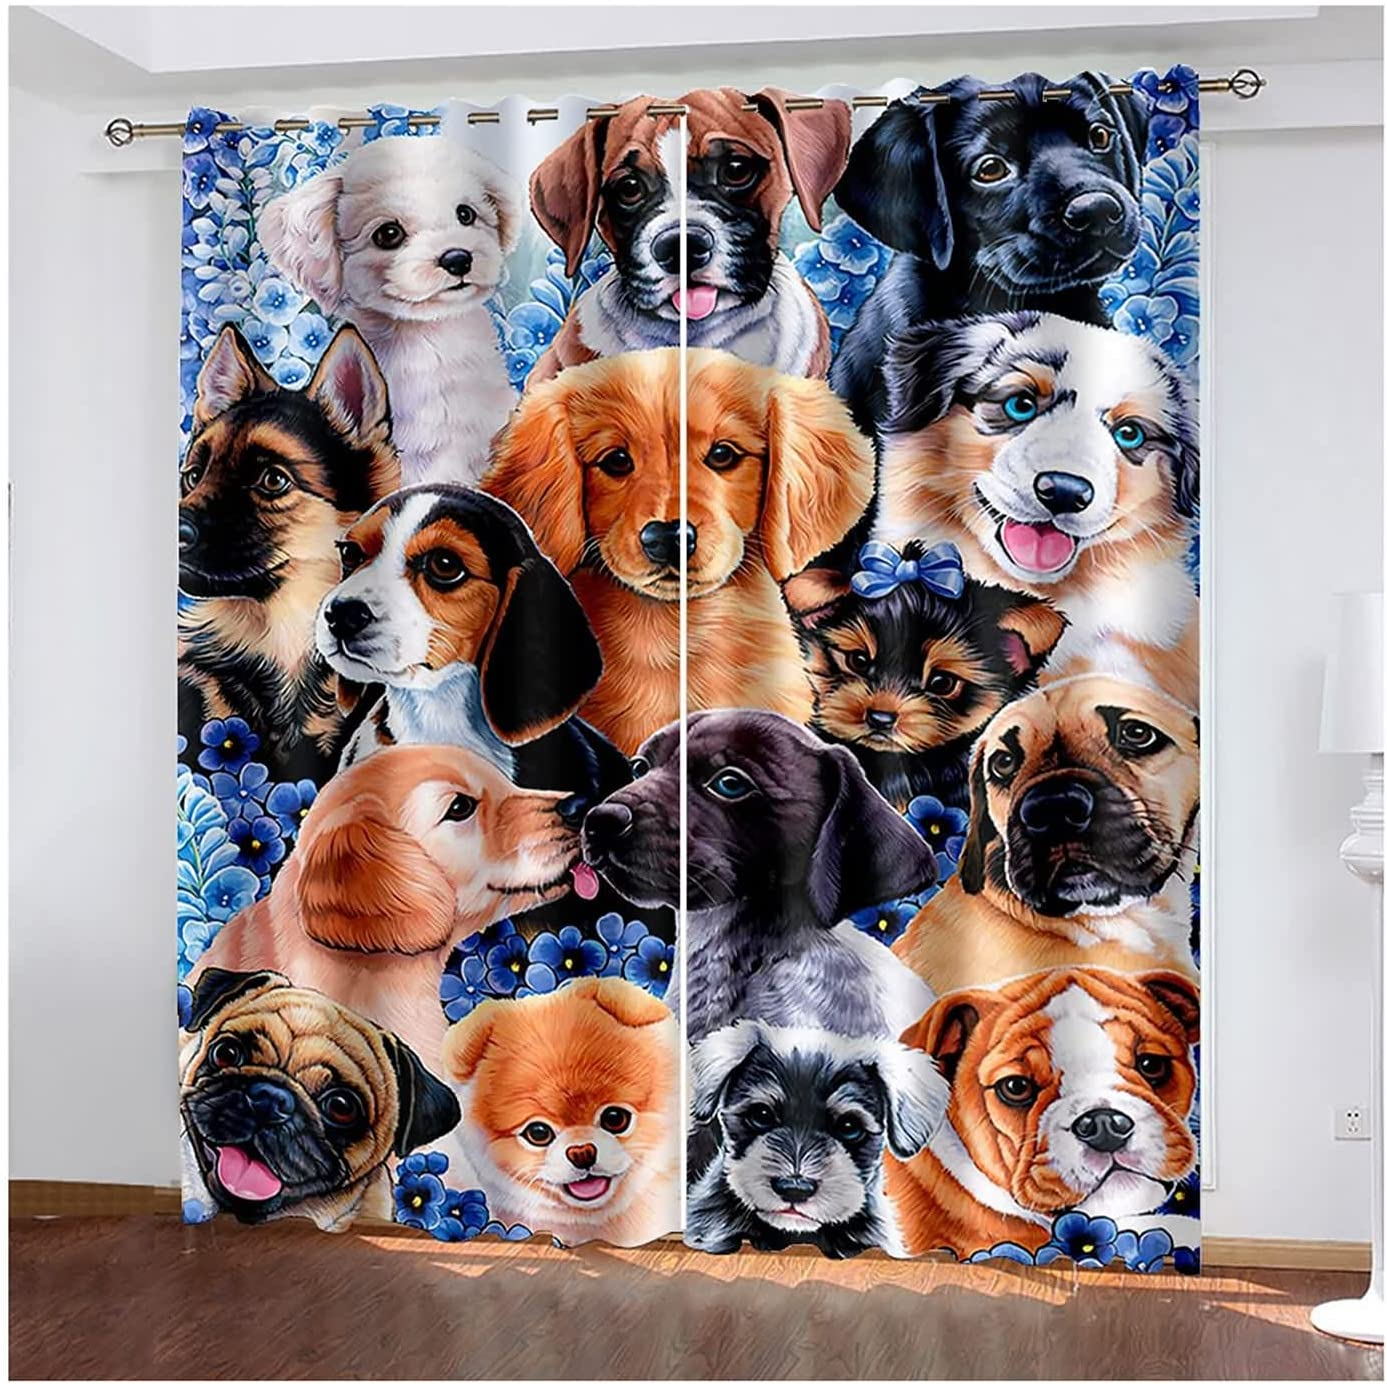 Daesar Window Curtains Credence 2021 autumn and winter new 2 Panels Cute Pu Blackout Eyelet Curtain